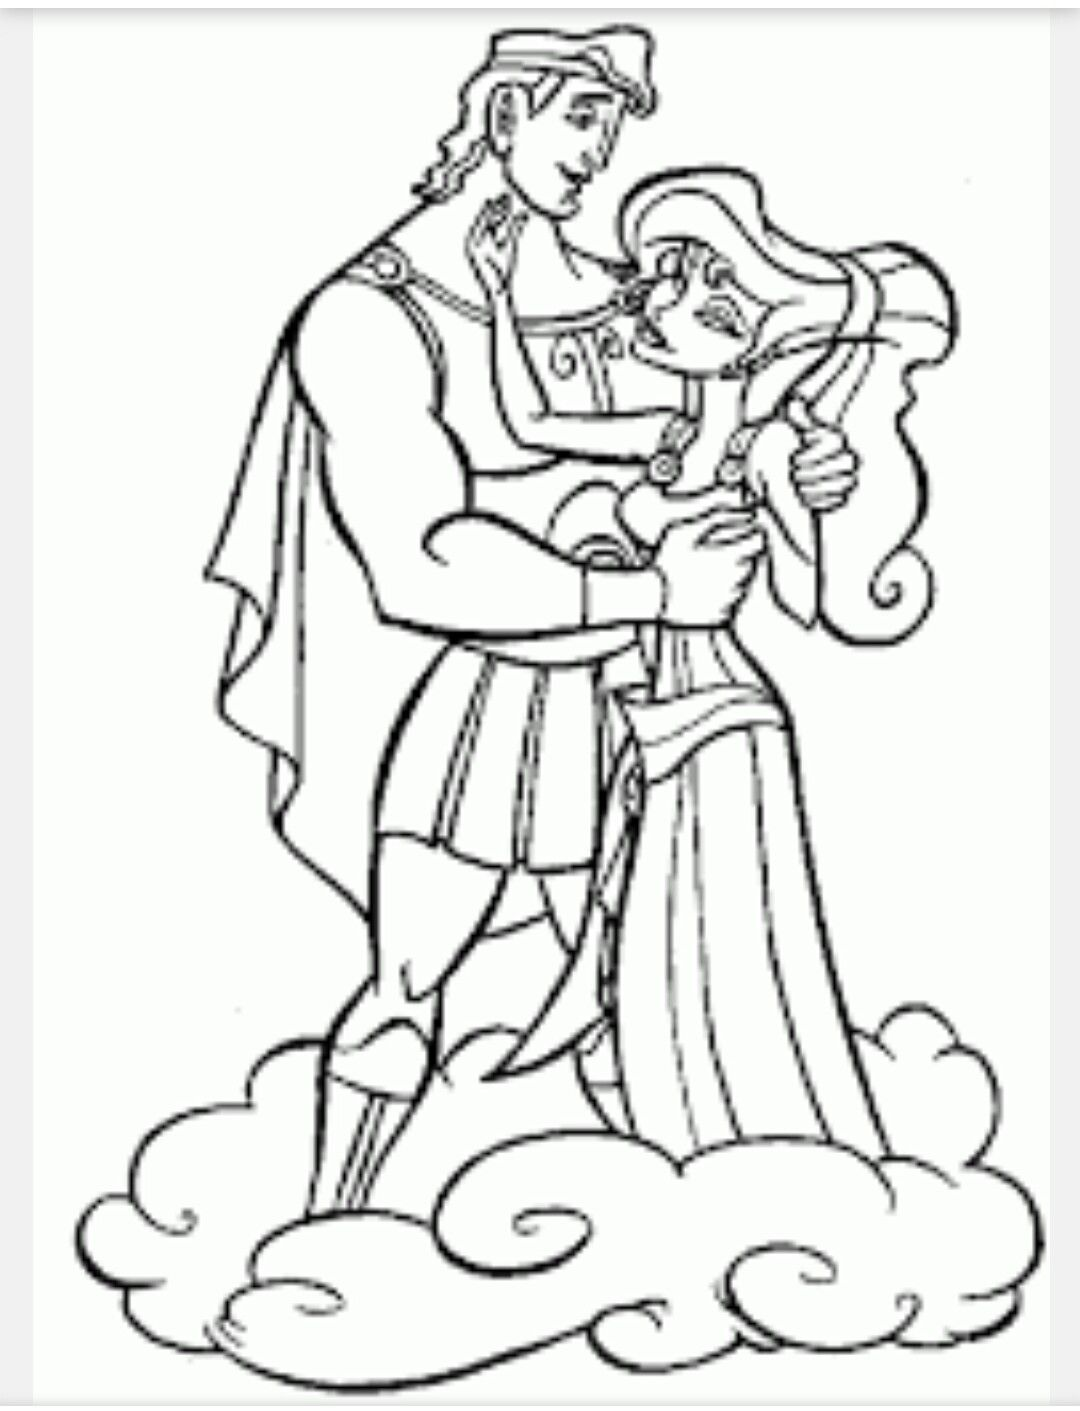 Hercules And Meg Coloring Sheet Disney Coloring Pages Cartoon Coloring Pages Disney Princess Coloring Pages